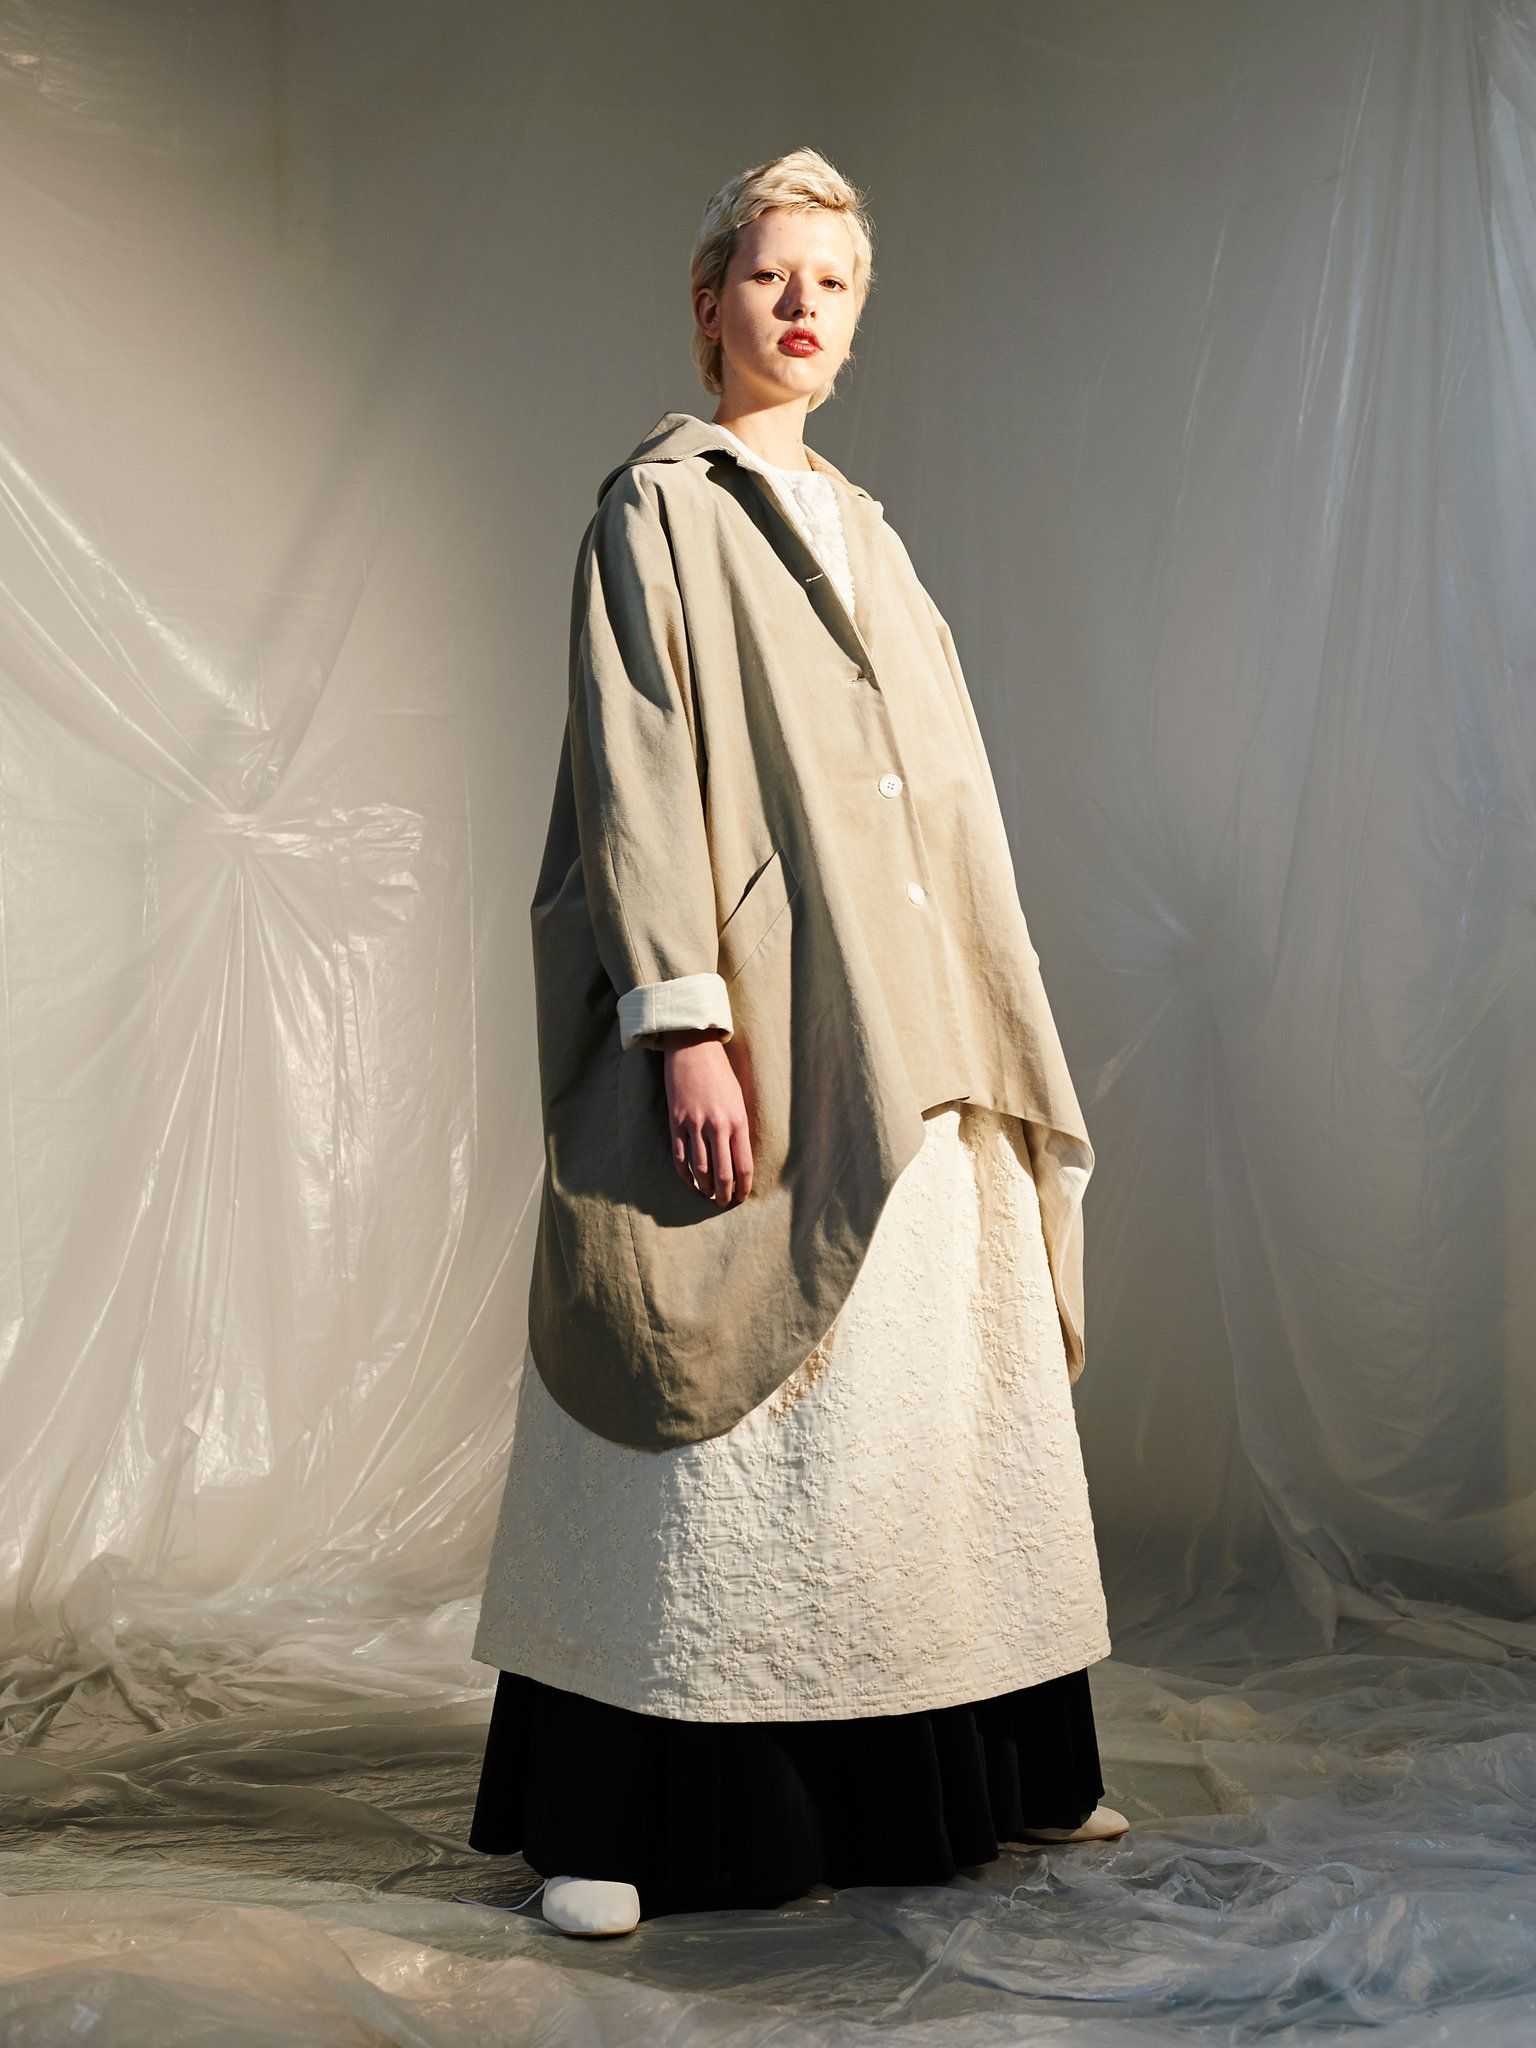 93dcf8556f86 The Chinese designer makes embroidered pieces in cream and beige colors and  big…